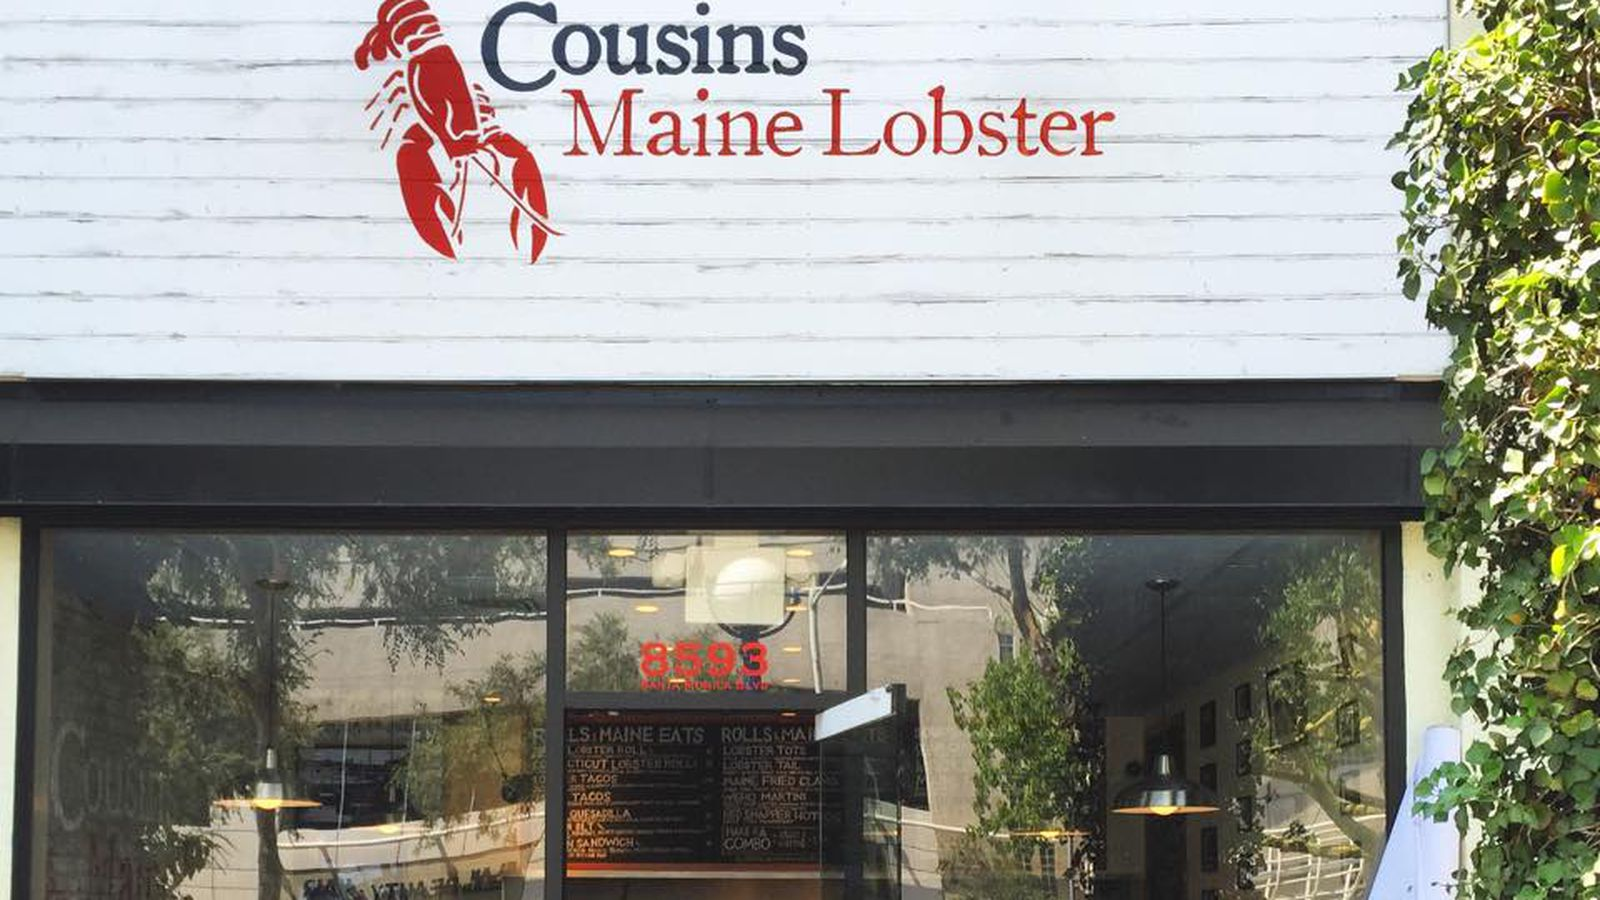 Cousins Maine Lobster Brings Giant Seafood Filled Martini Gles To New Weho Location Eater La